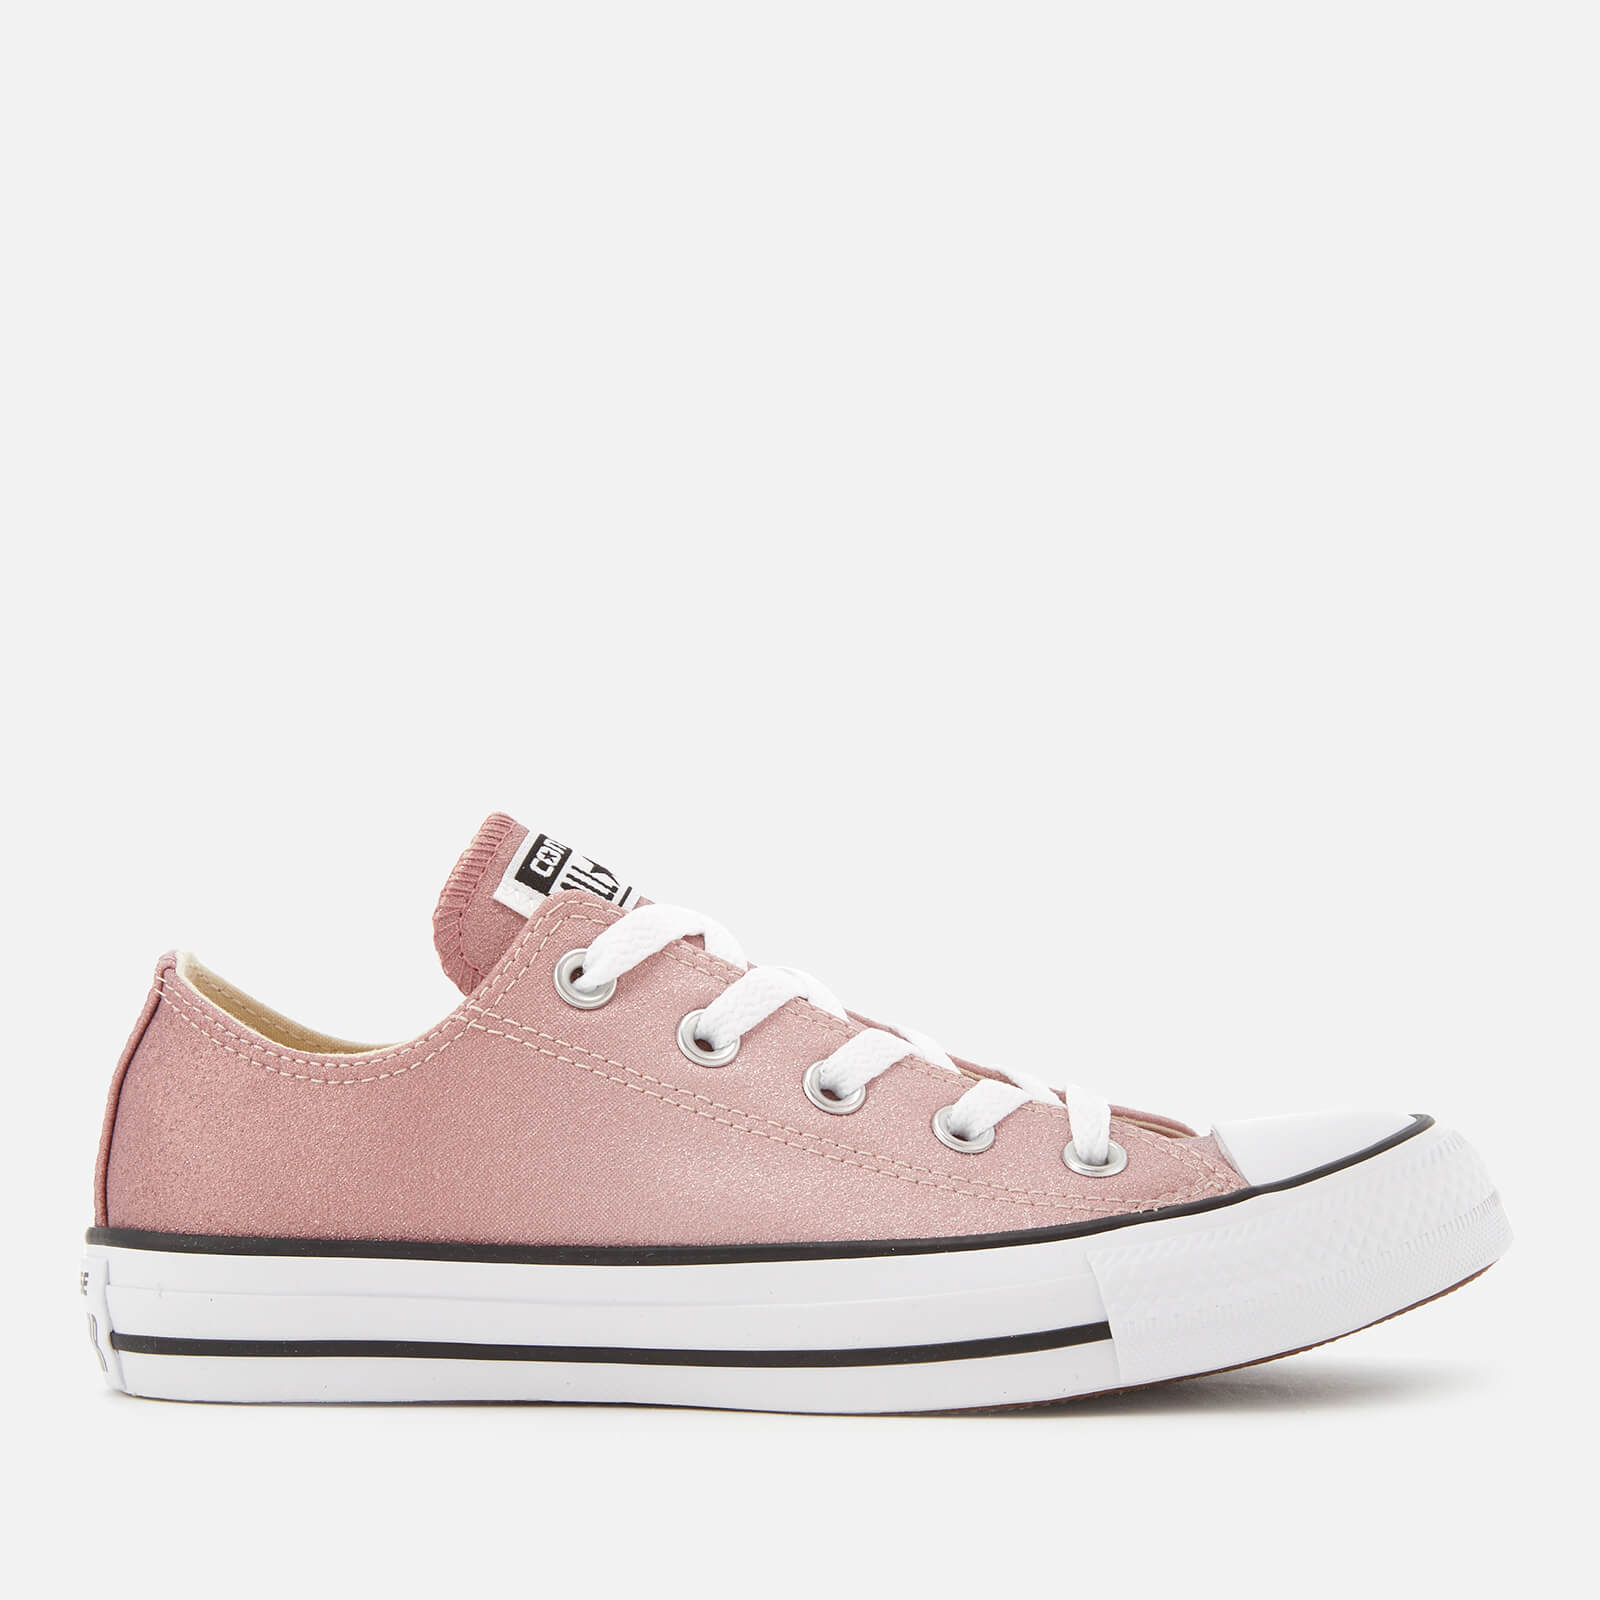 7851b0d04e48b9 Converse Women s Chuck Taylor All Star Ox Trainers - Particle Beige Saddle  White Womens Footwear